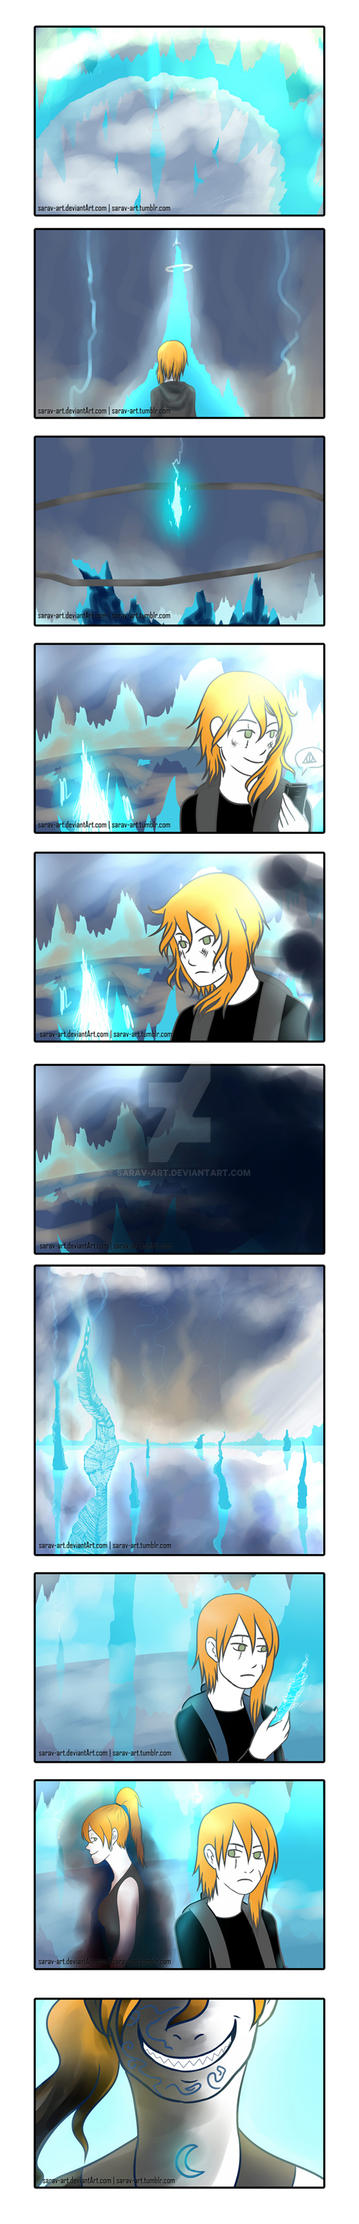 Old Comic by SaraV-Art